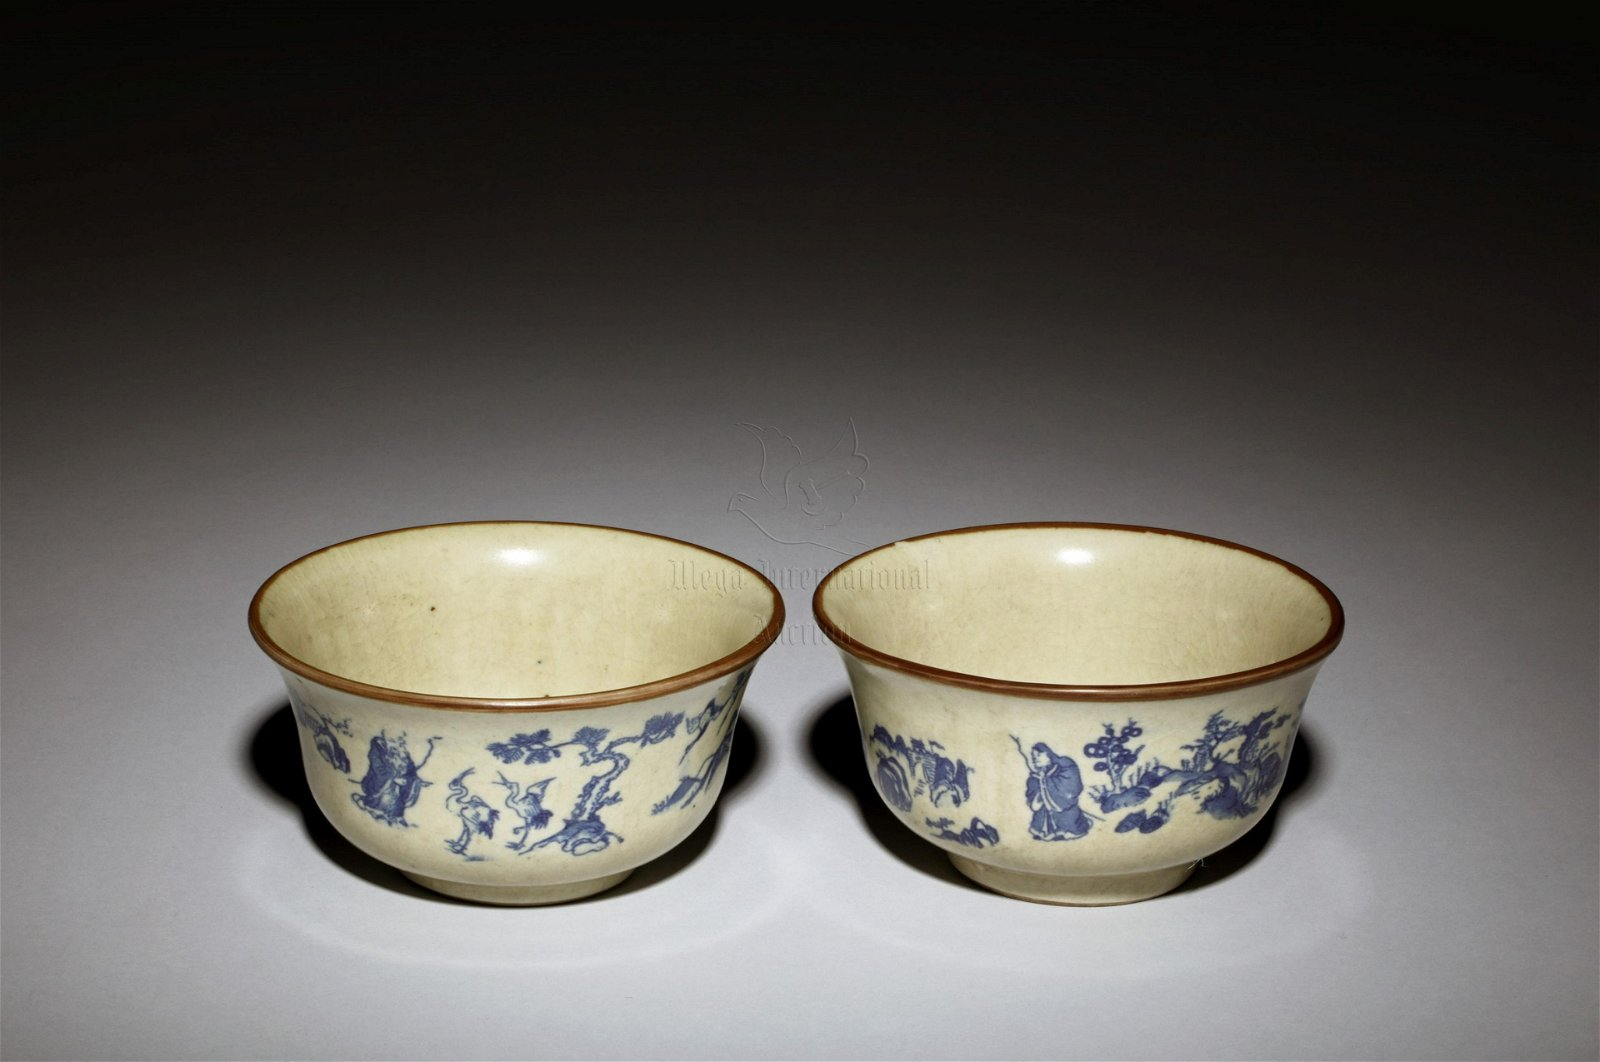 PAIR OF BLUE AND WHITE